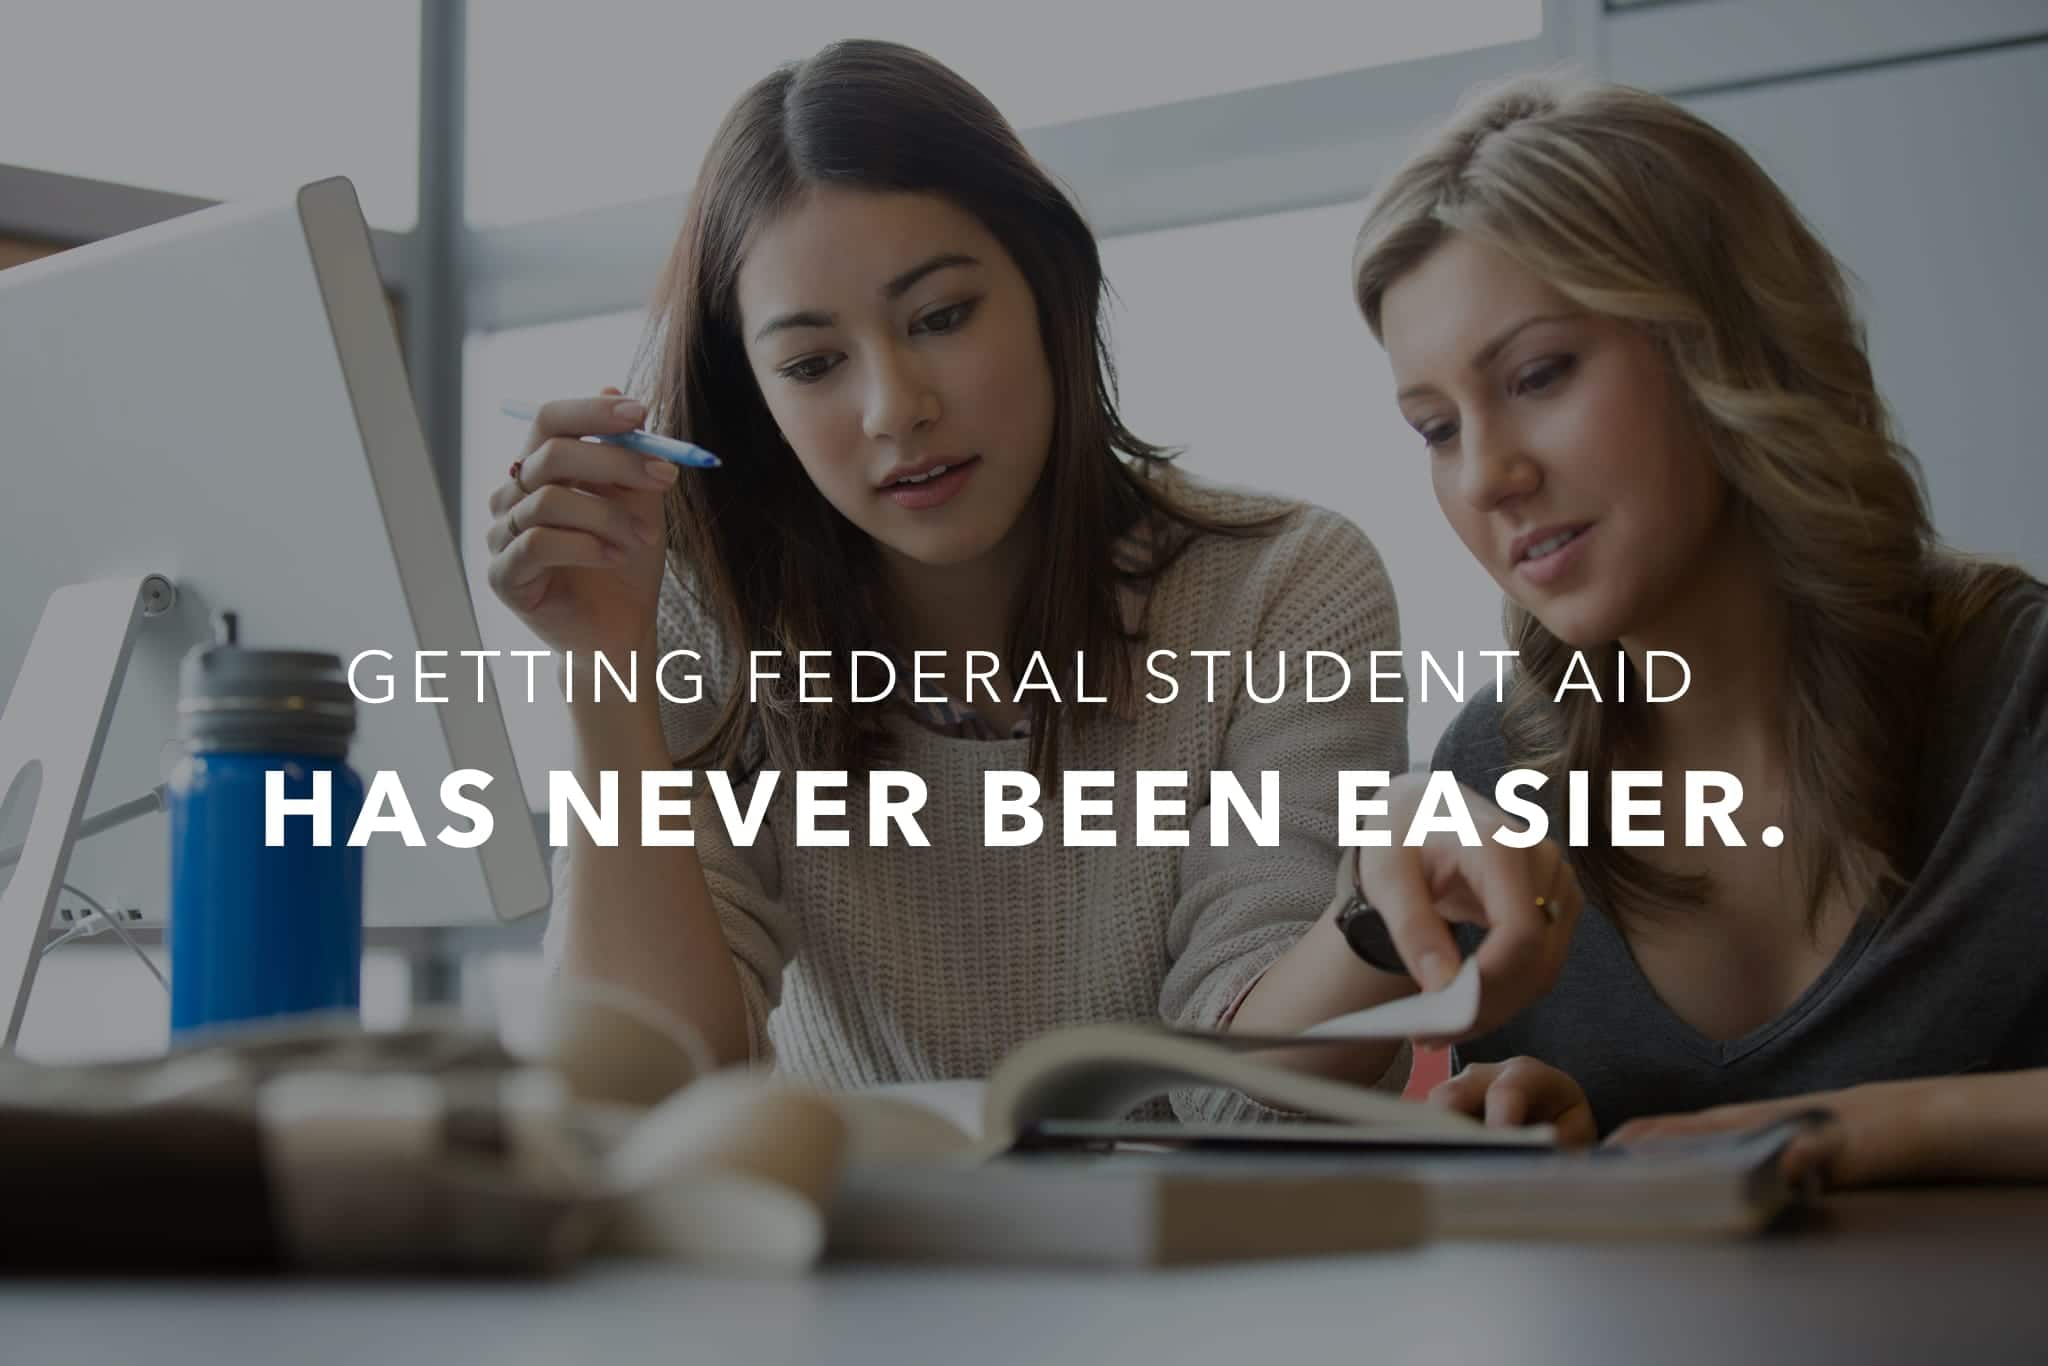 U.S. DEPARTMENT OF EDUCATION CAMPAIGN